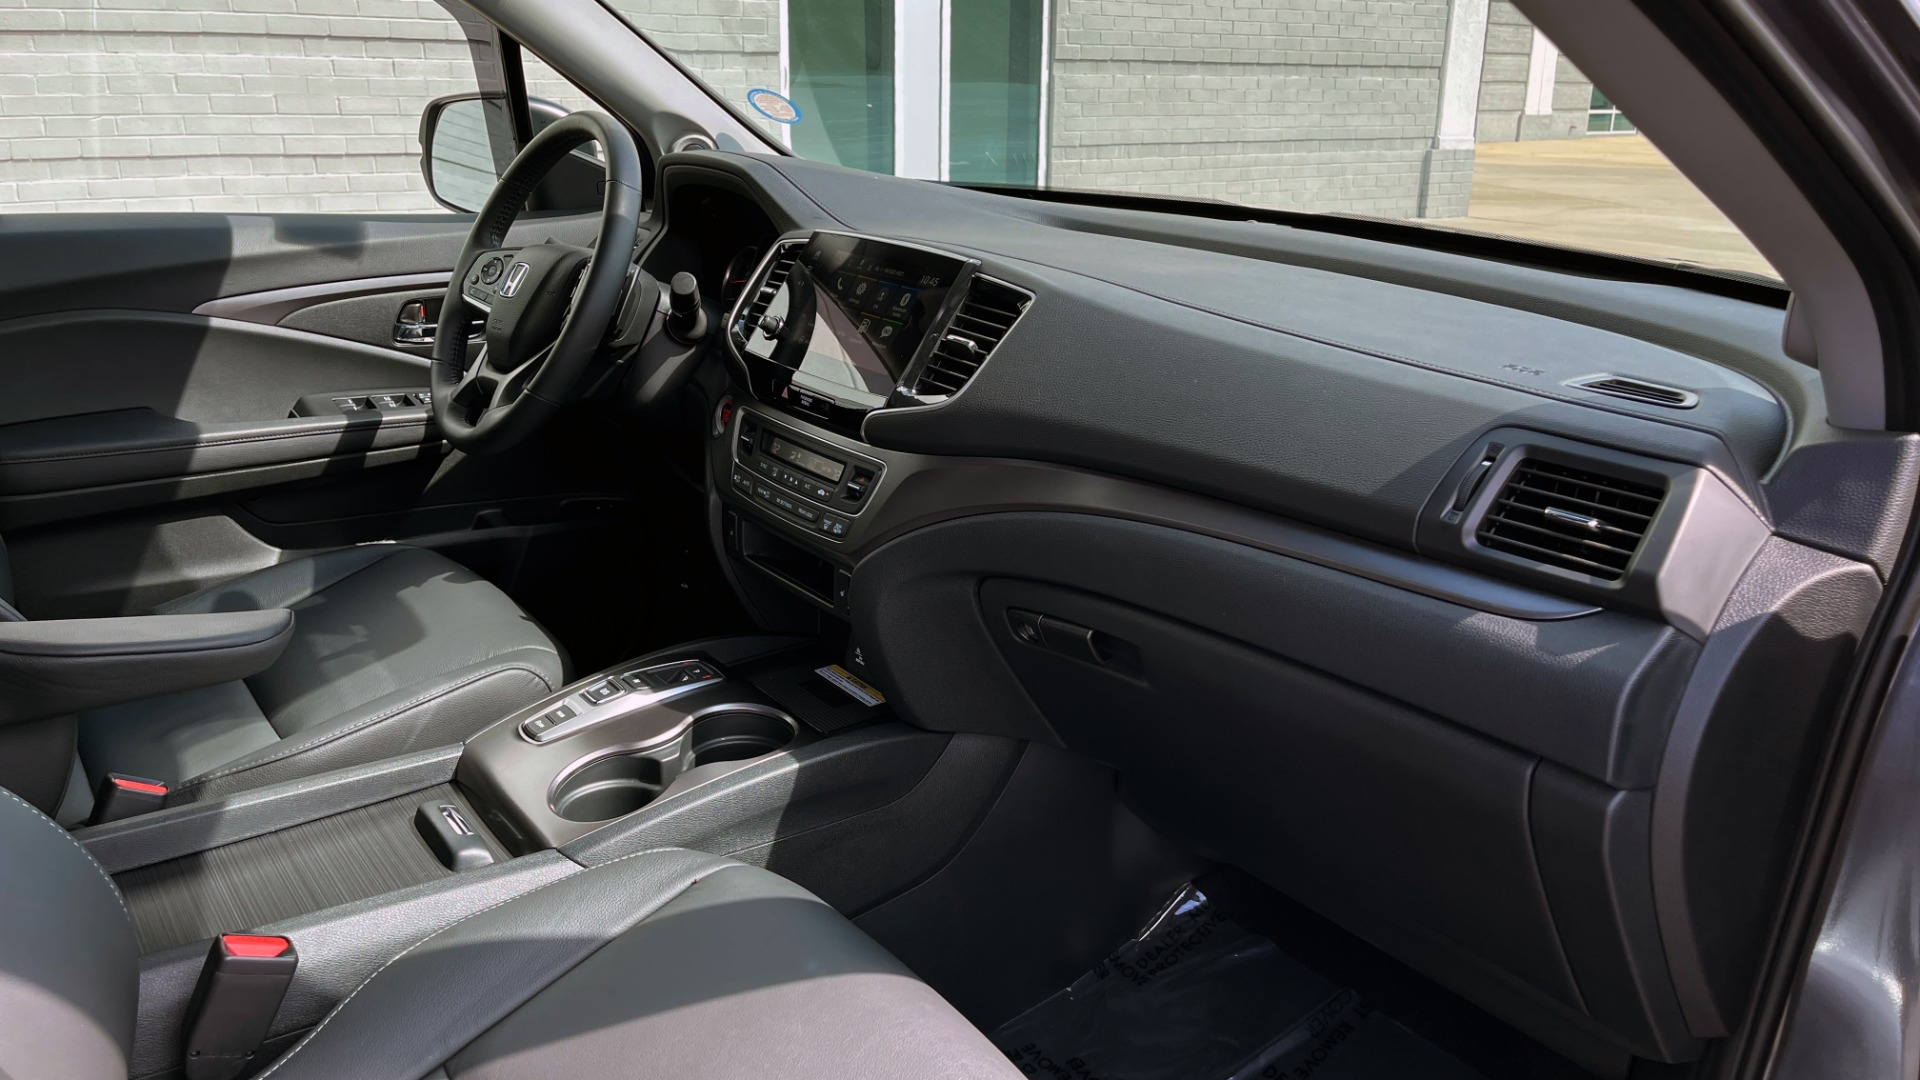 Used 2021 Honda PILOT SE / 3.5L V6 / 9-SPD AUTO / SUNROOF / 3-ROW / REARVIEW for sale $38,795 at Formula Imports in Charlotte NC 28227 64